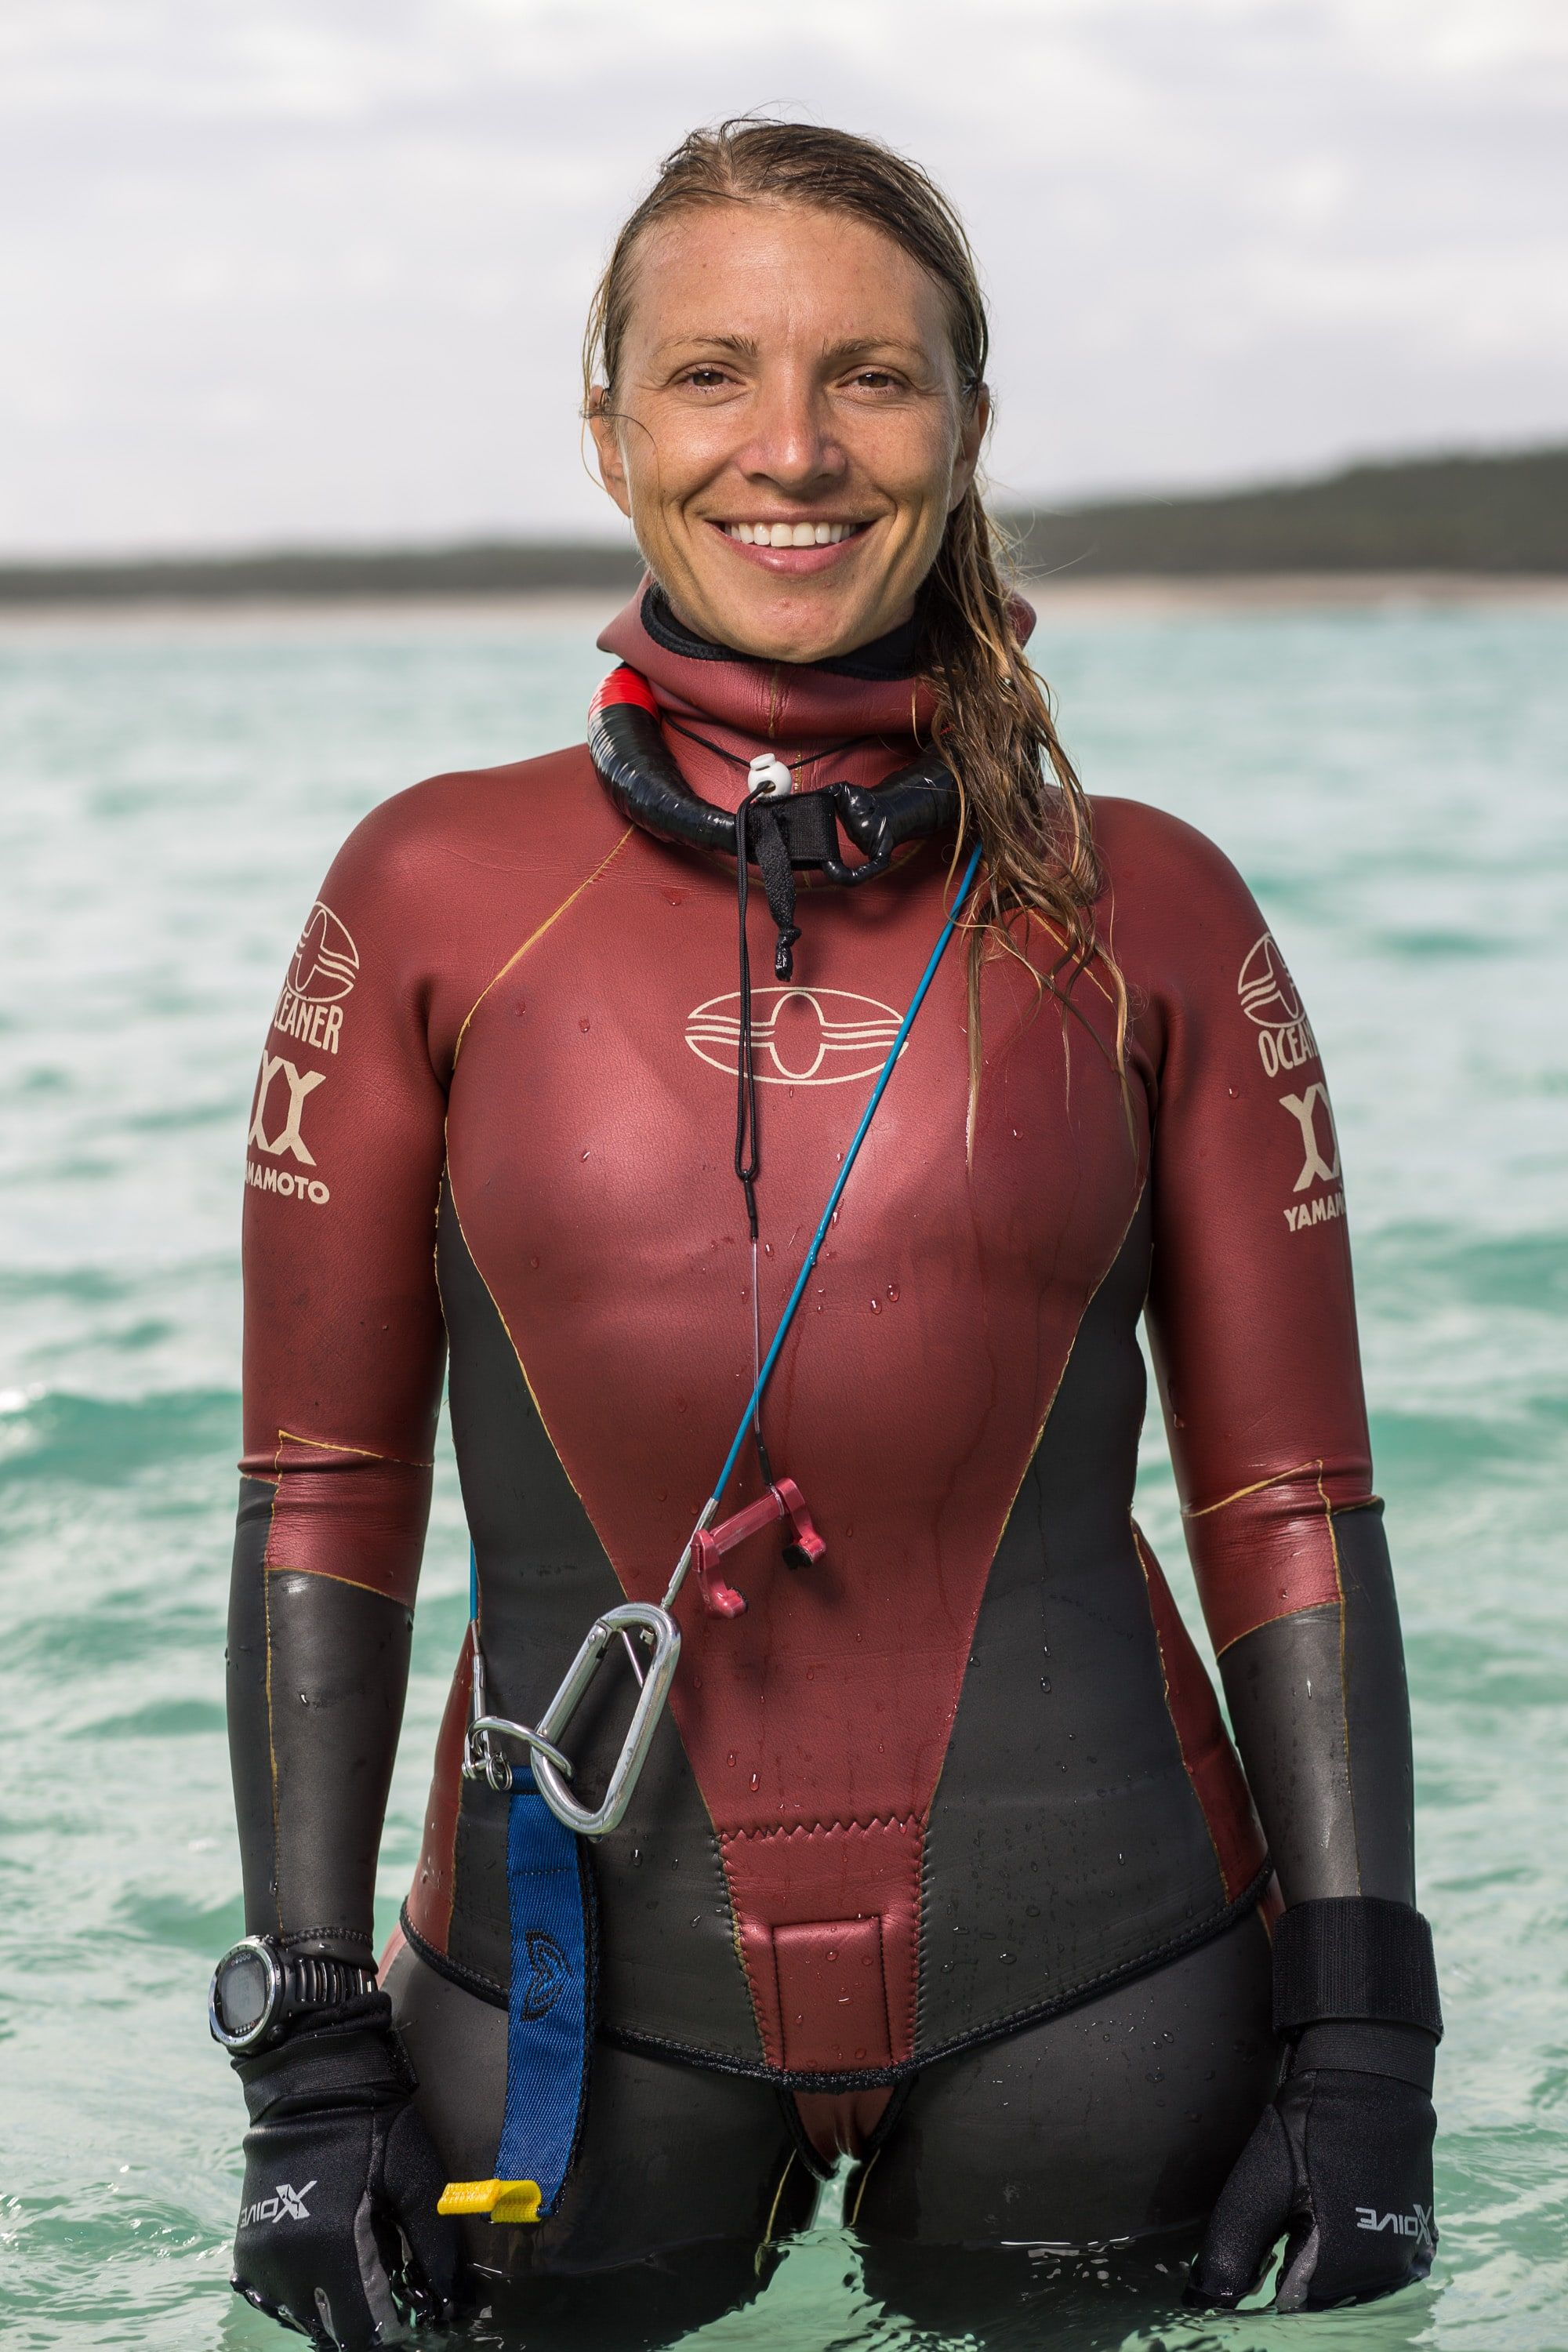 Pin by Андрей2 Сиделёв on fridajving | Wetsuit, Diving ...